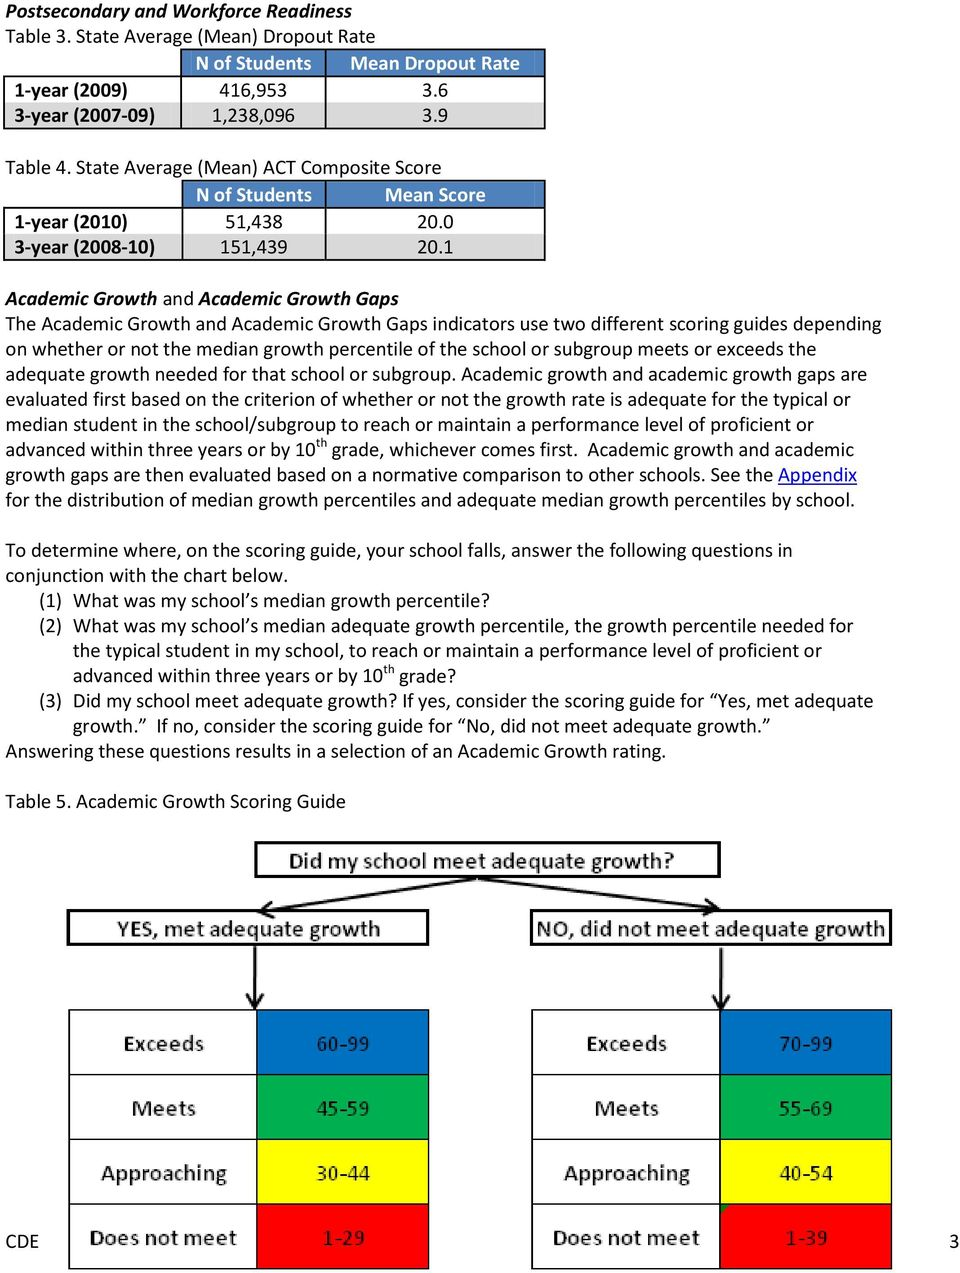 1 Academic Growth and Academic Growth Gaps The Academic Growth and Academic Growth Gaps indicators use two different scoring guides depending on whether or not the median growth percentile of the